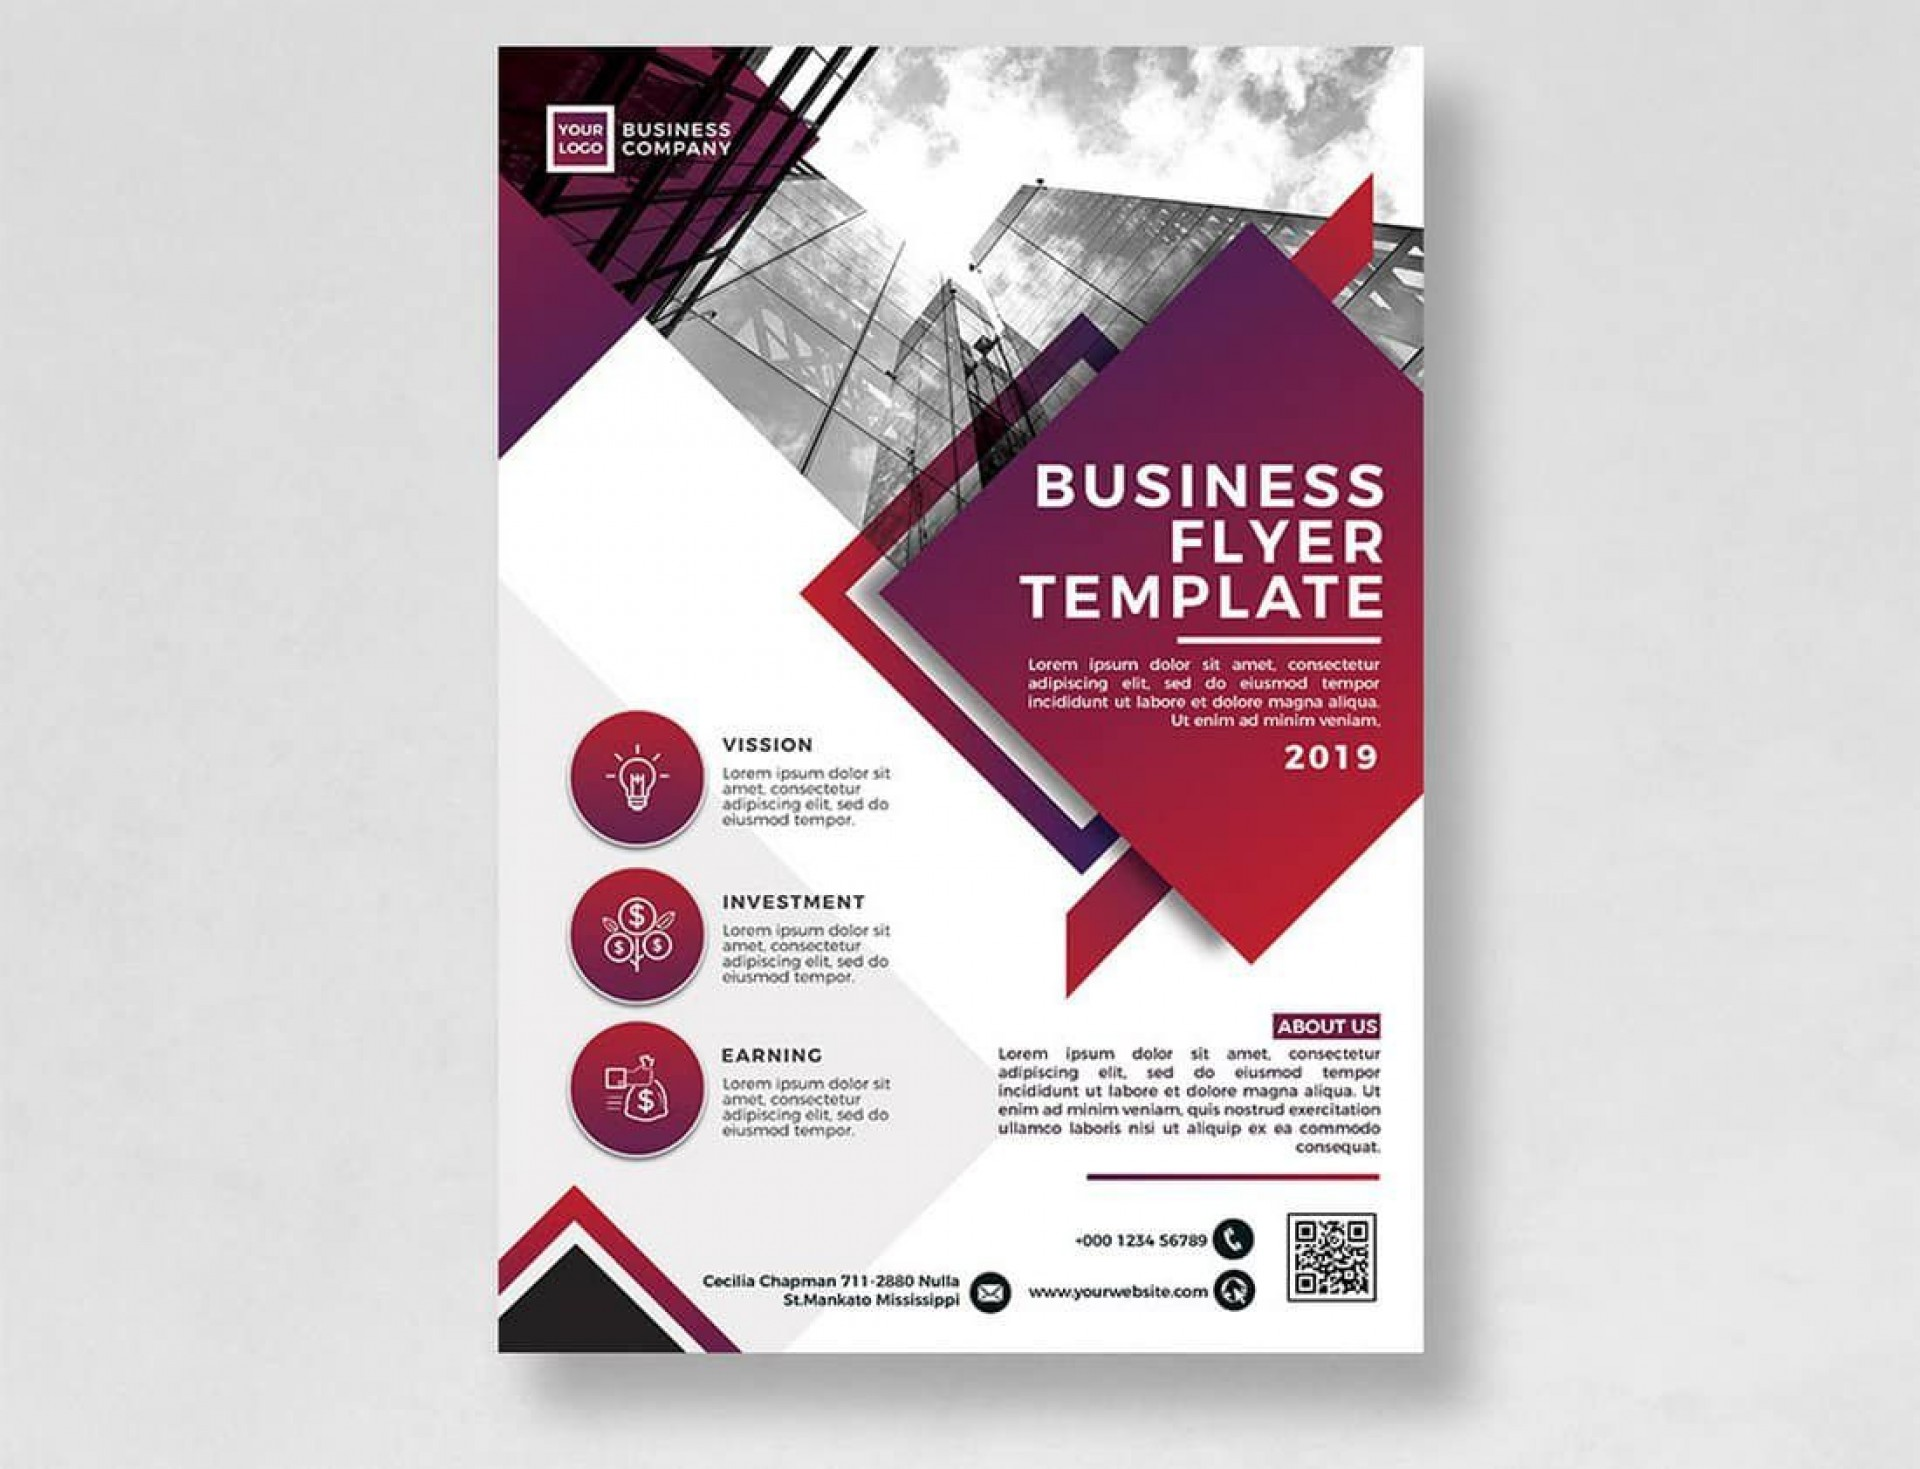 012 Unusual Free Flyer Design Template High Definition  Templates Online Download Psd1920